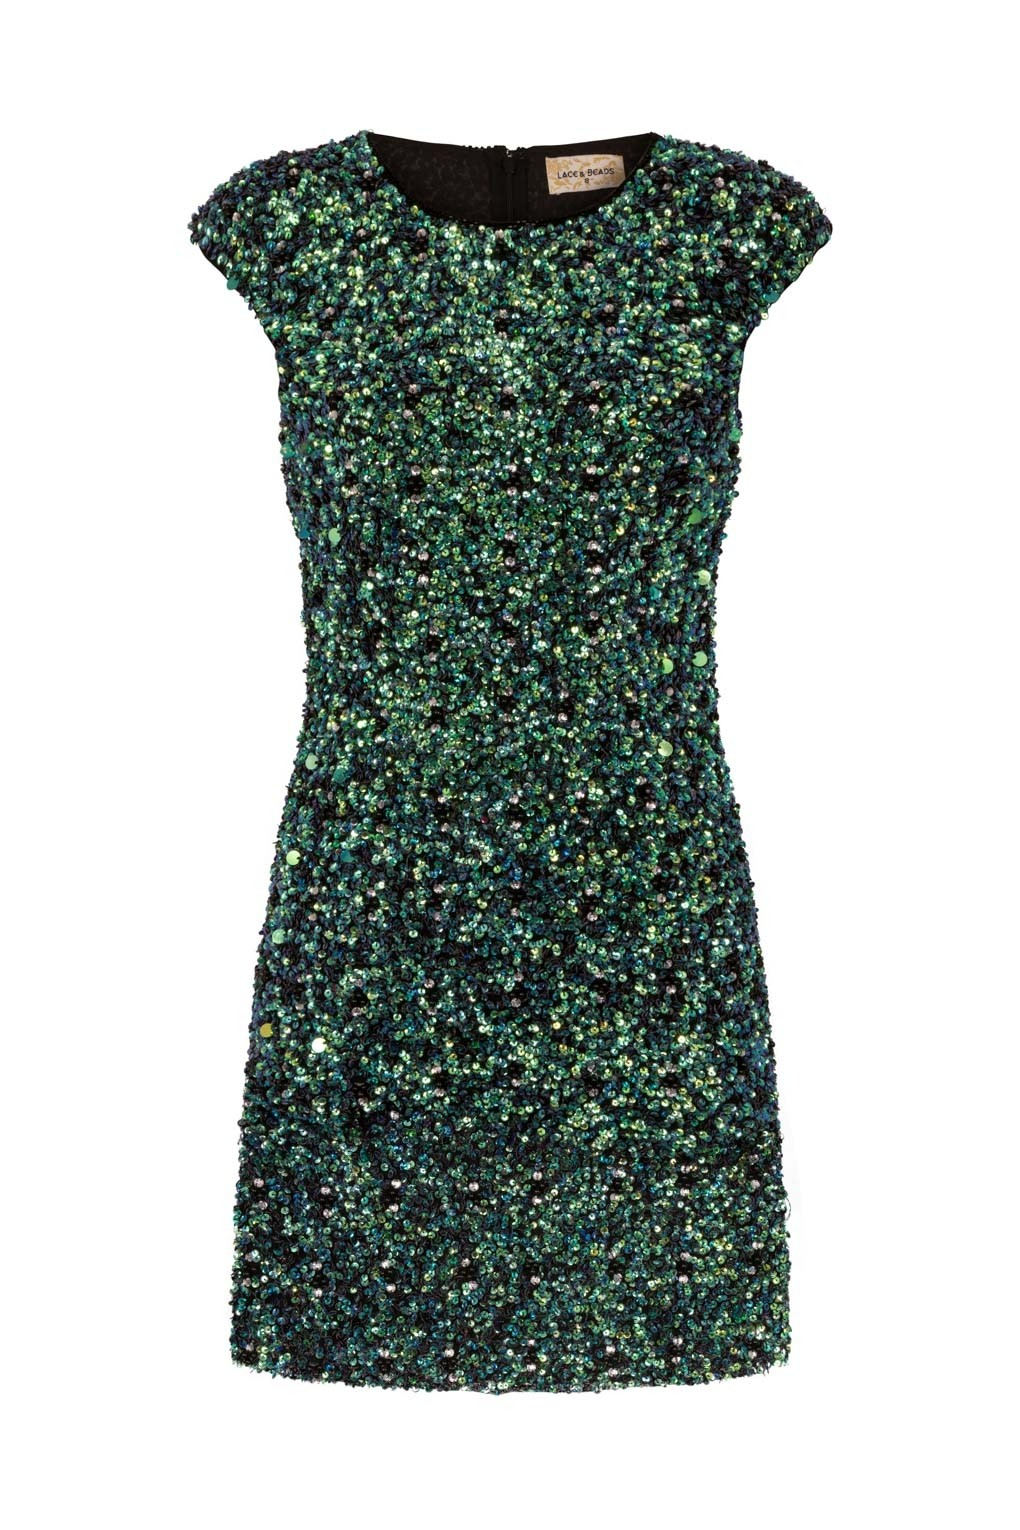 lace beads spica green sequin dress lace beads party dress. Black Bedroom Furniture Sets. Home Design Ideas